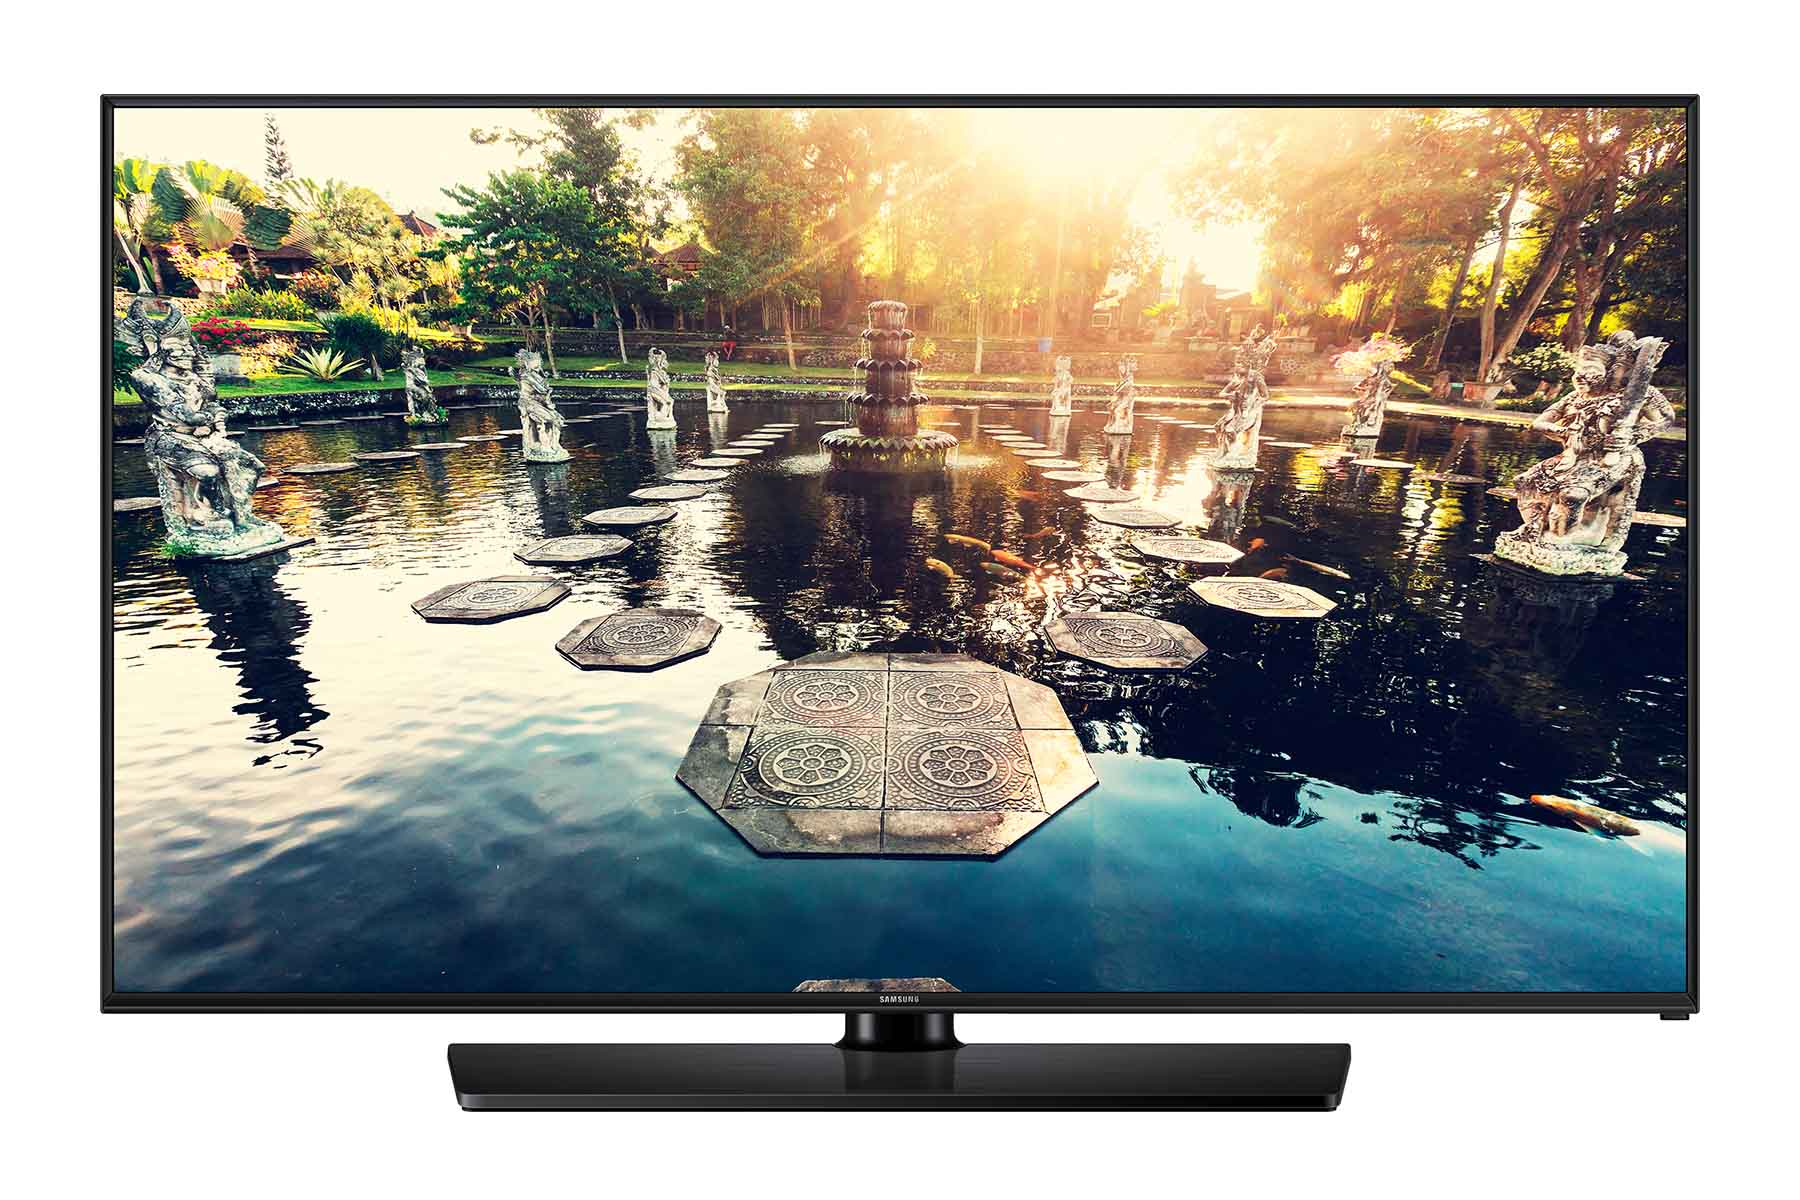 Samsung Ne690 Direct Lit Led Tv For Hotels With Ip Or Rf